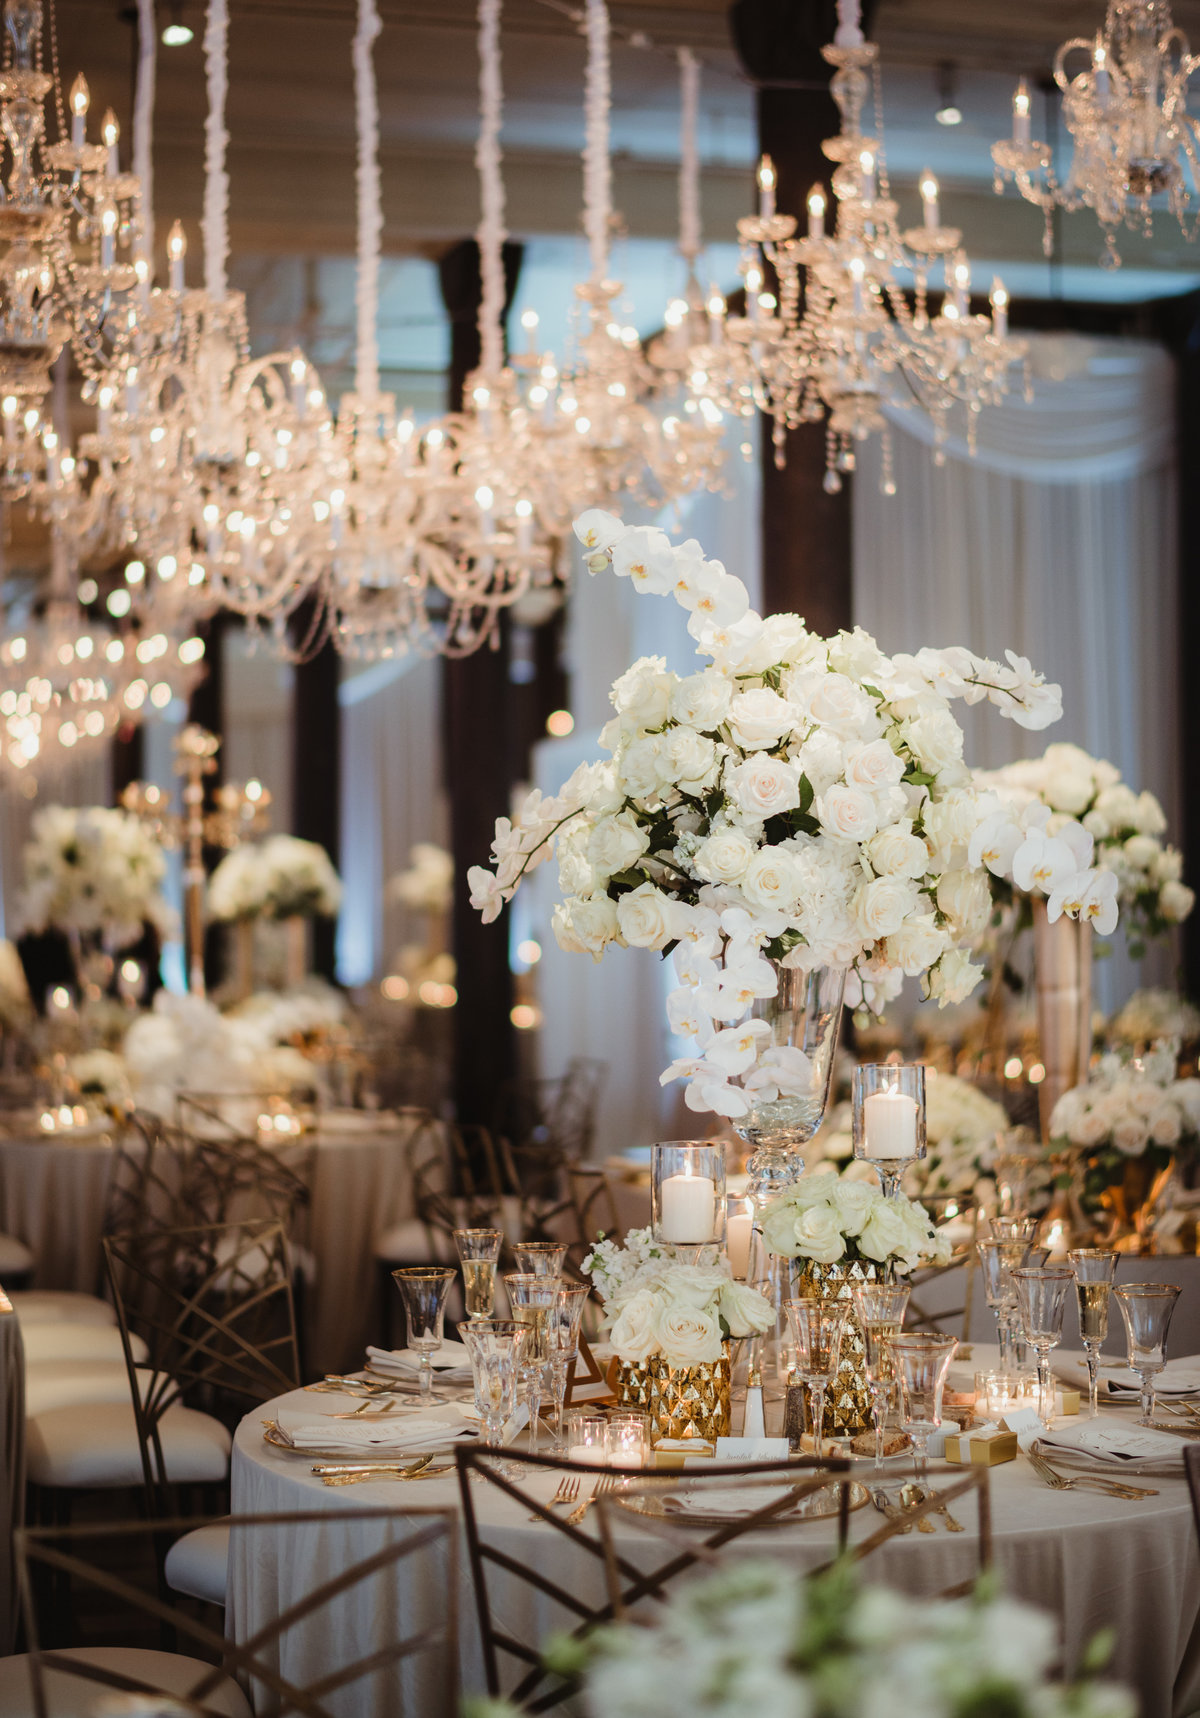 white floral centerpiece, gold chairs, reception decor